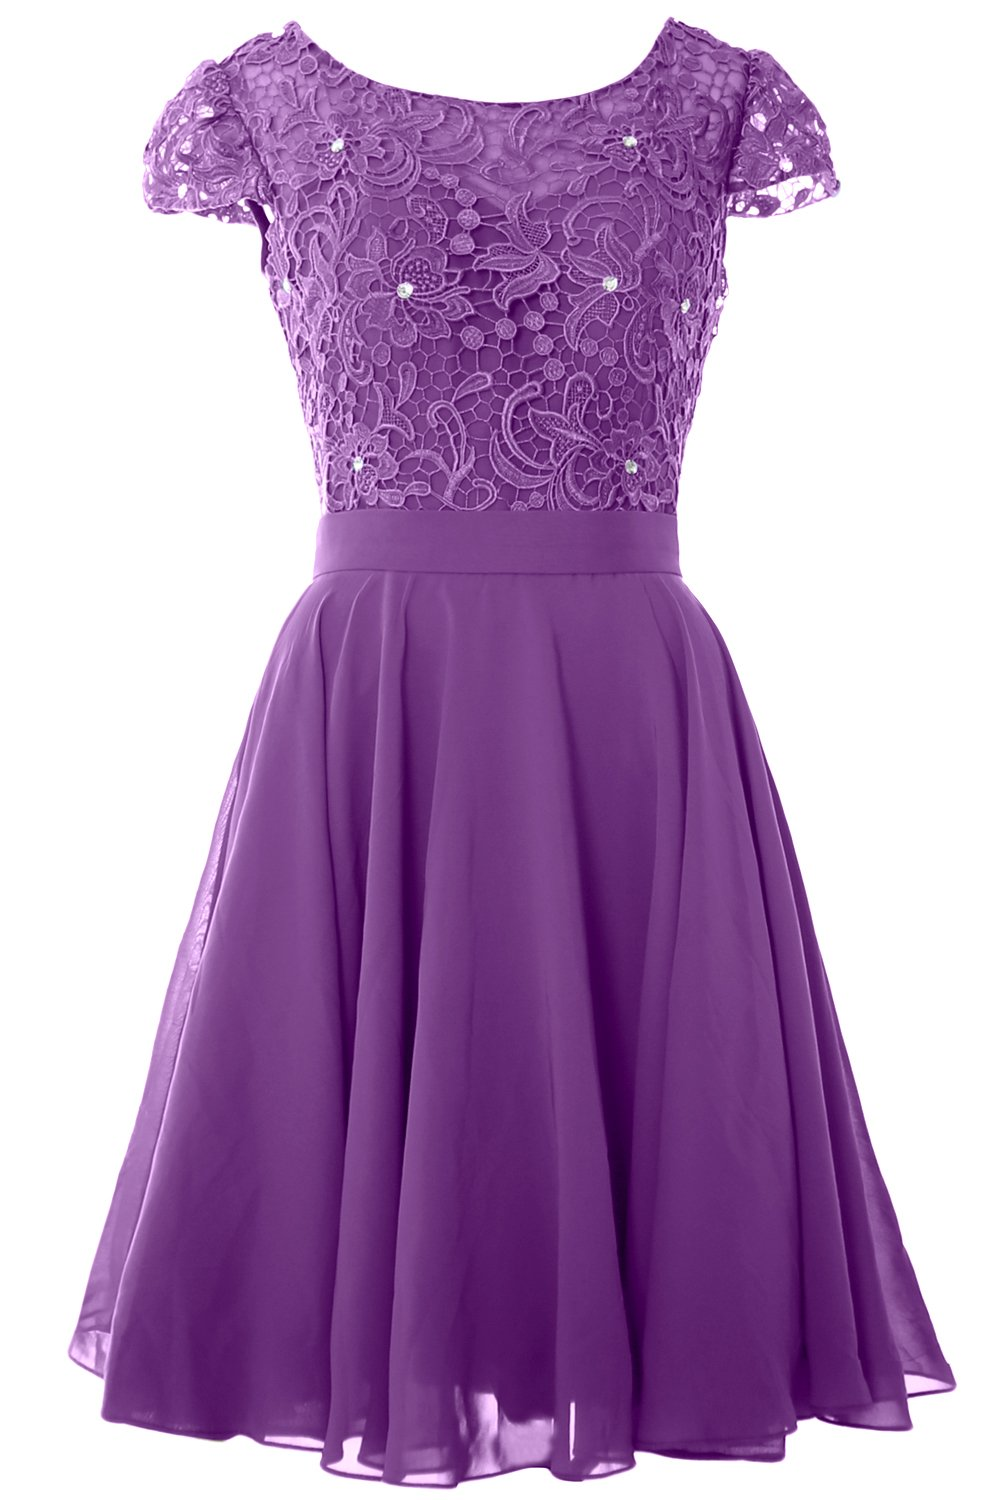 MACloth Women Cap Sleeve Mother of The Bride Dress Lace Short Formal Party Gown (24w, Amethyst) by MACloth (Image #1)